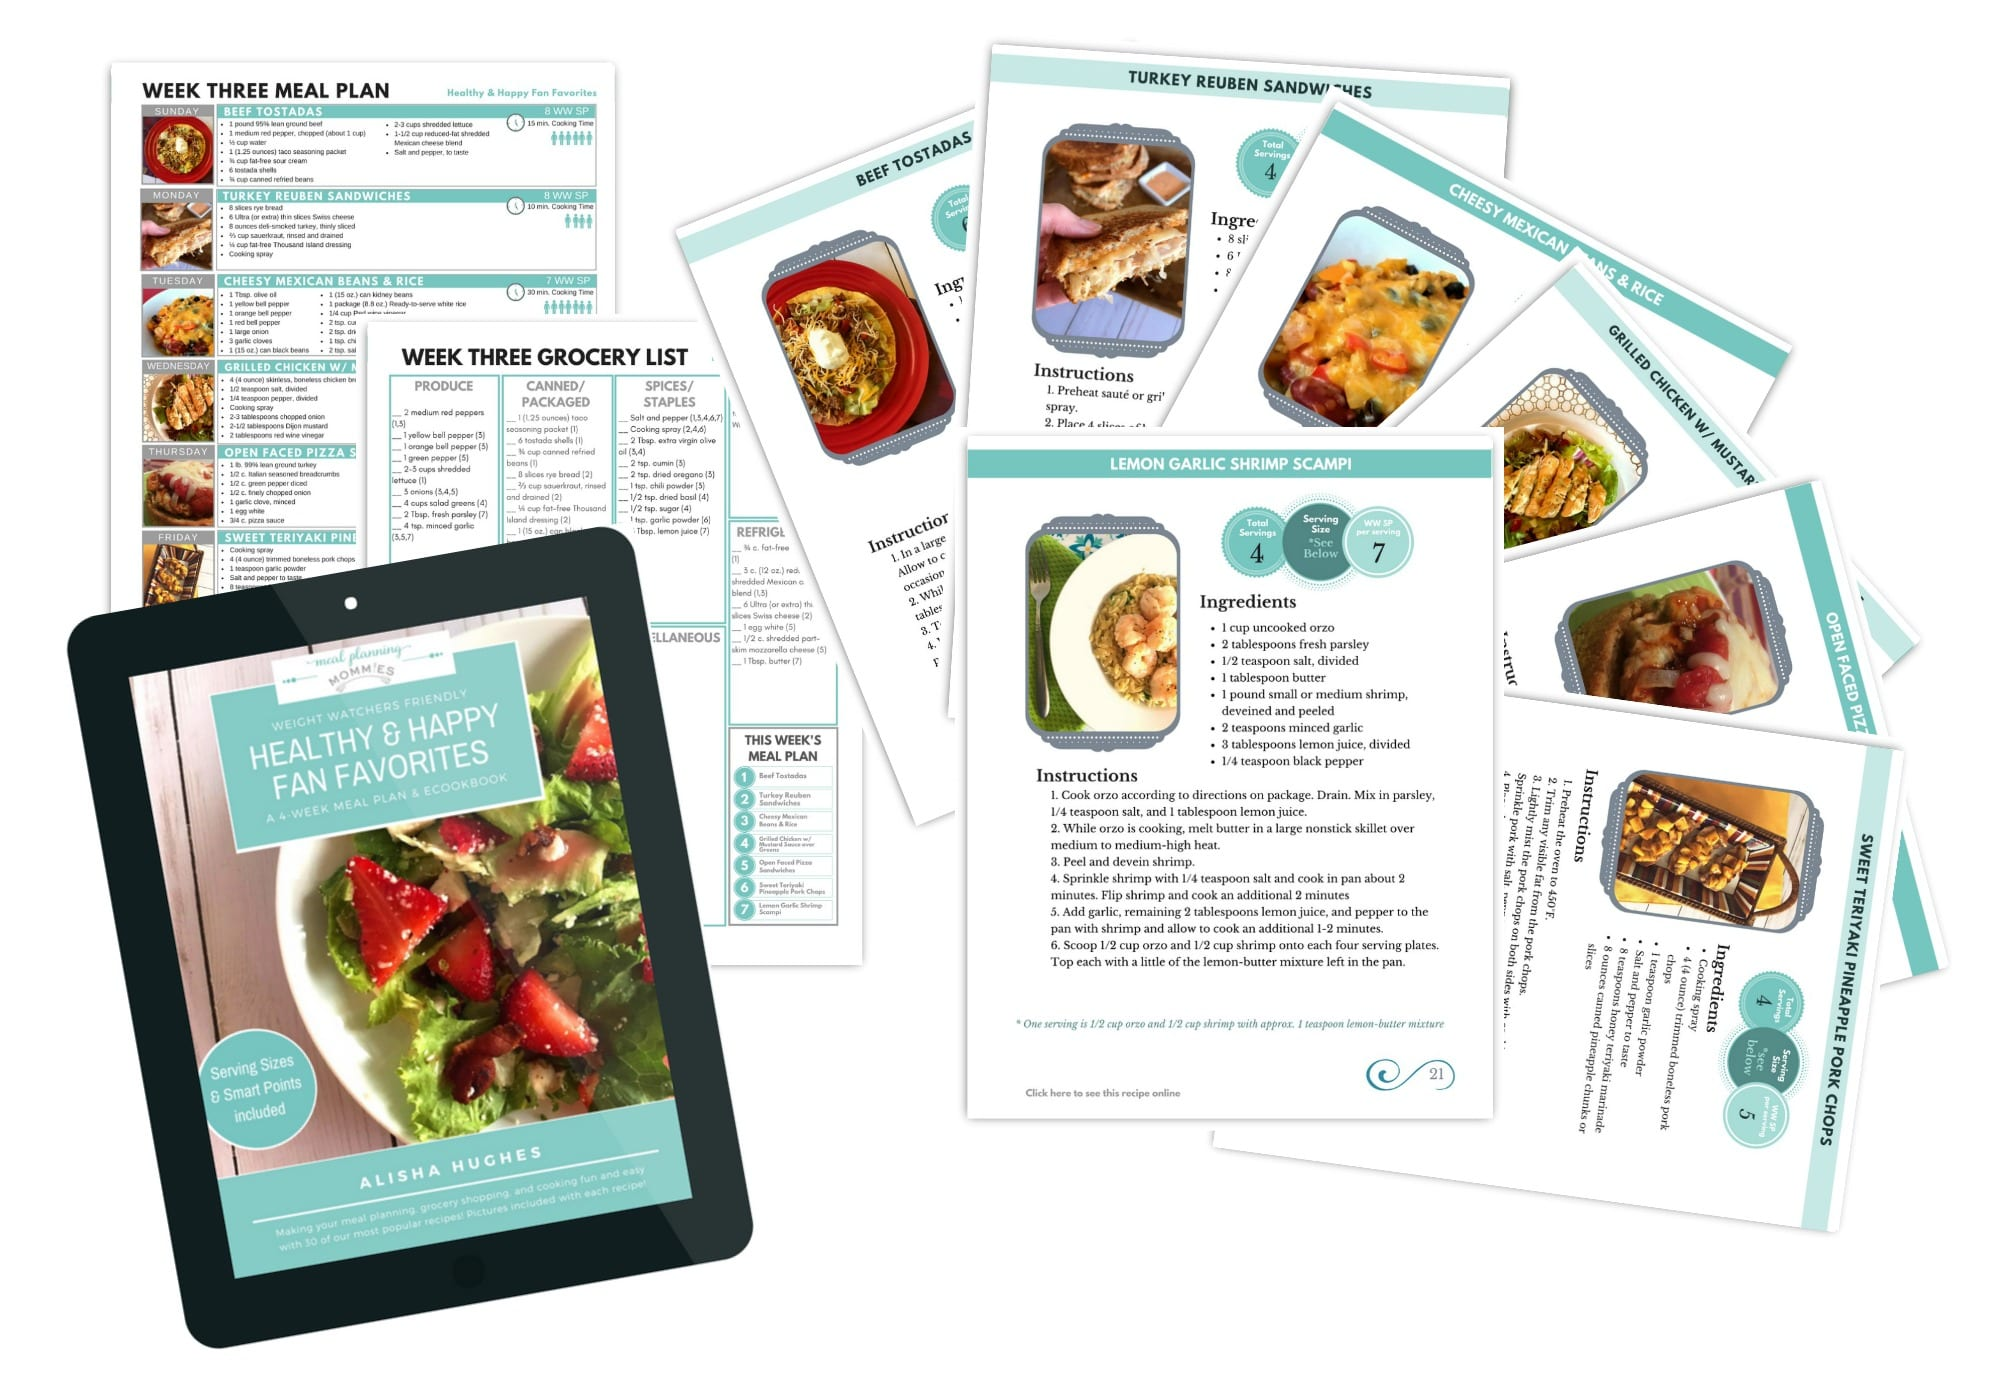 Healthy & Happy Fan Favorites eCookbok and Meal Planner